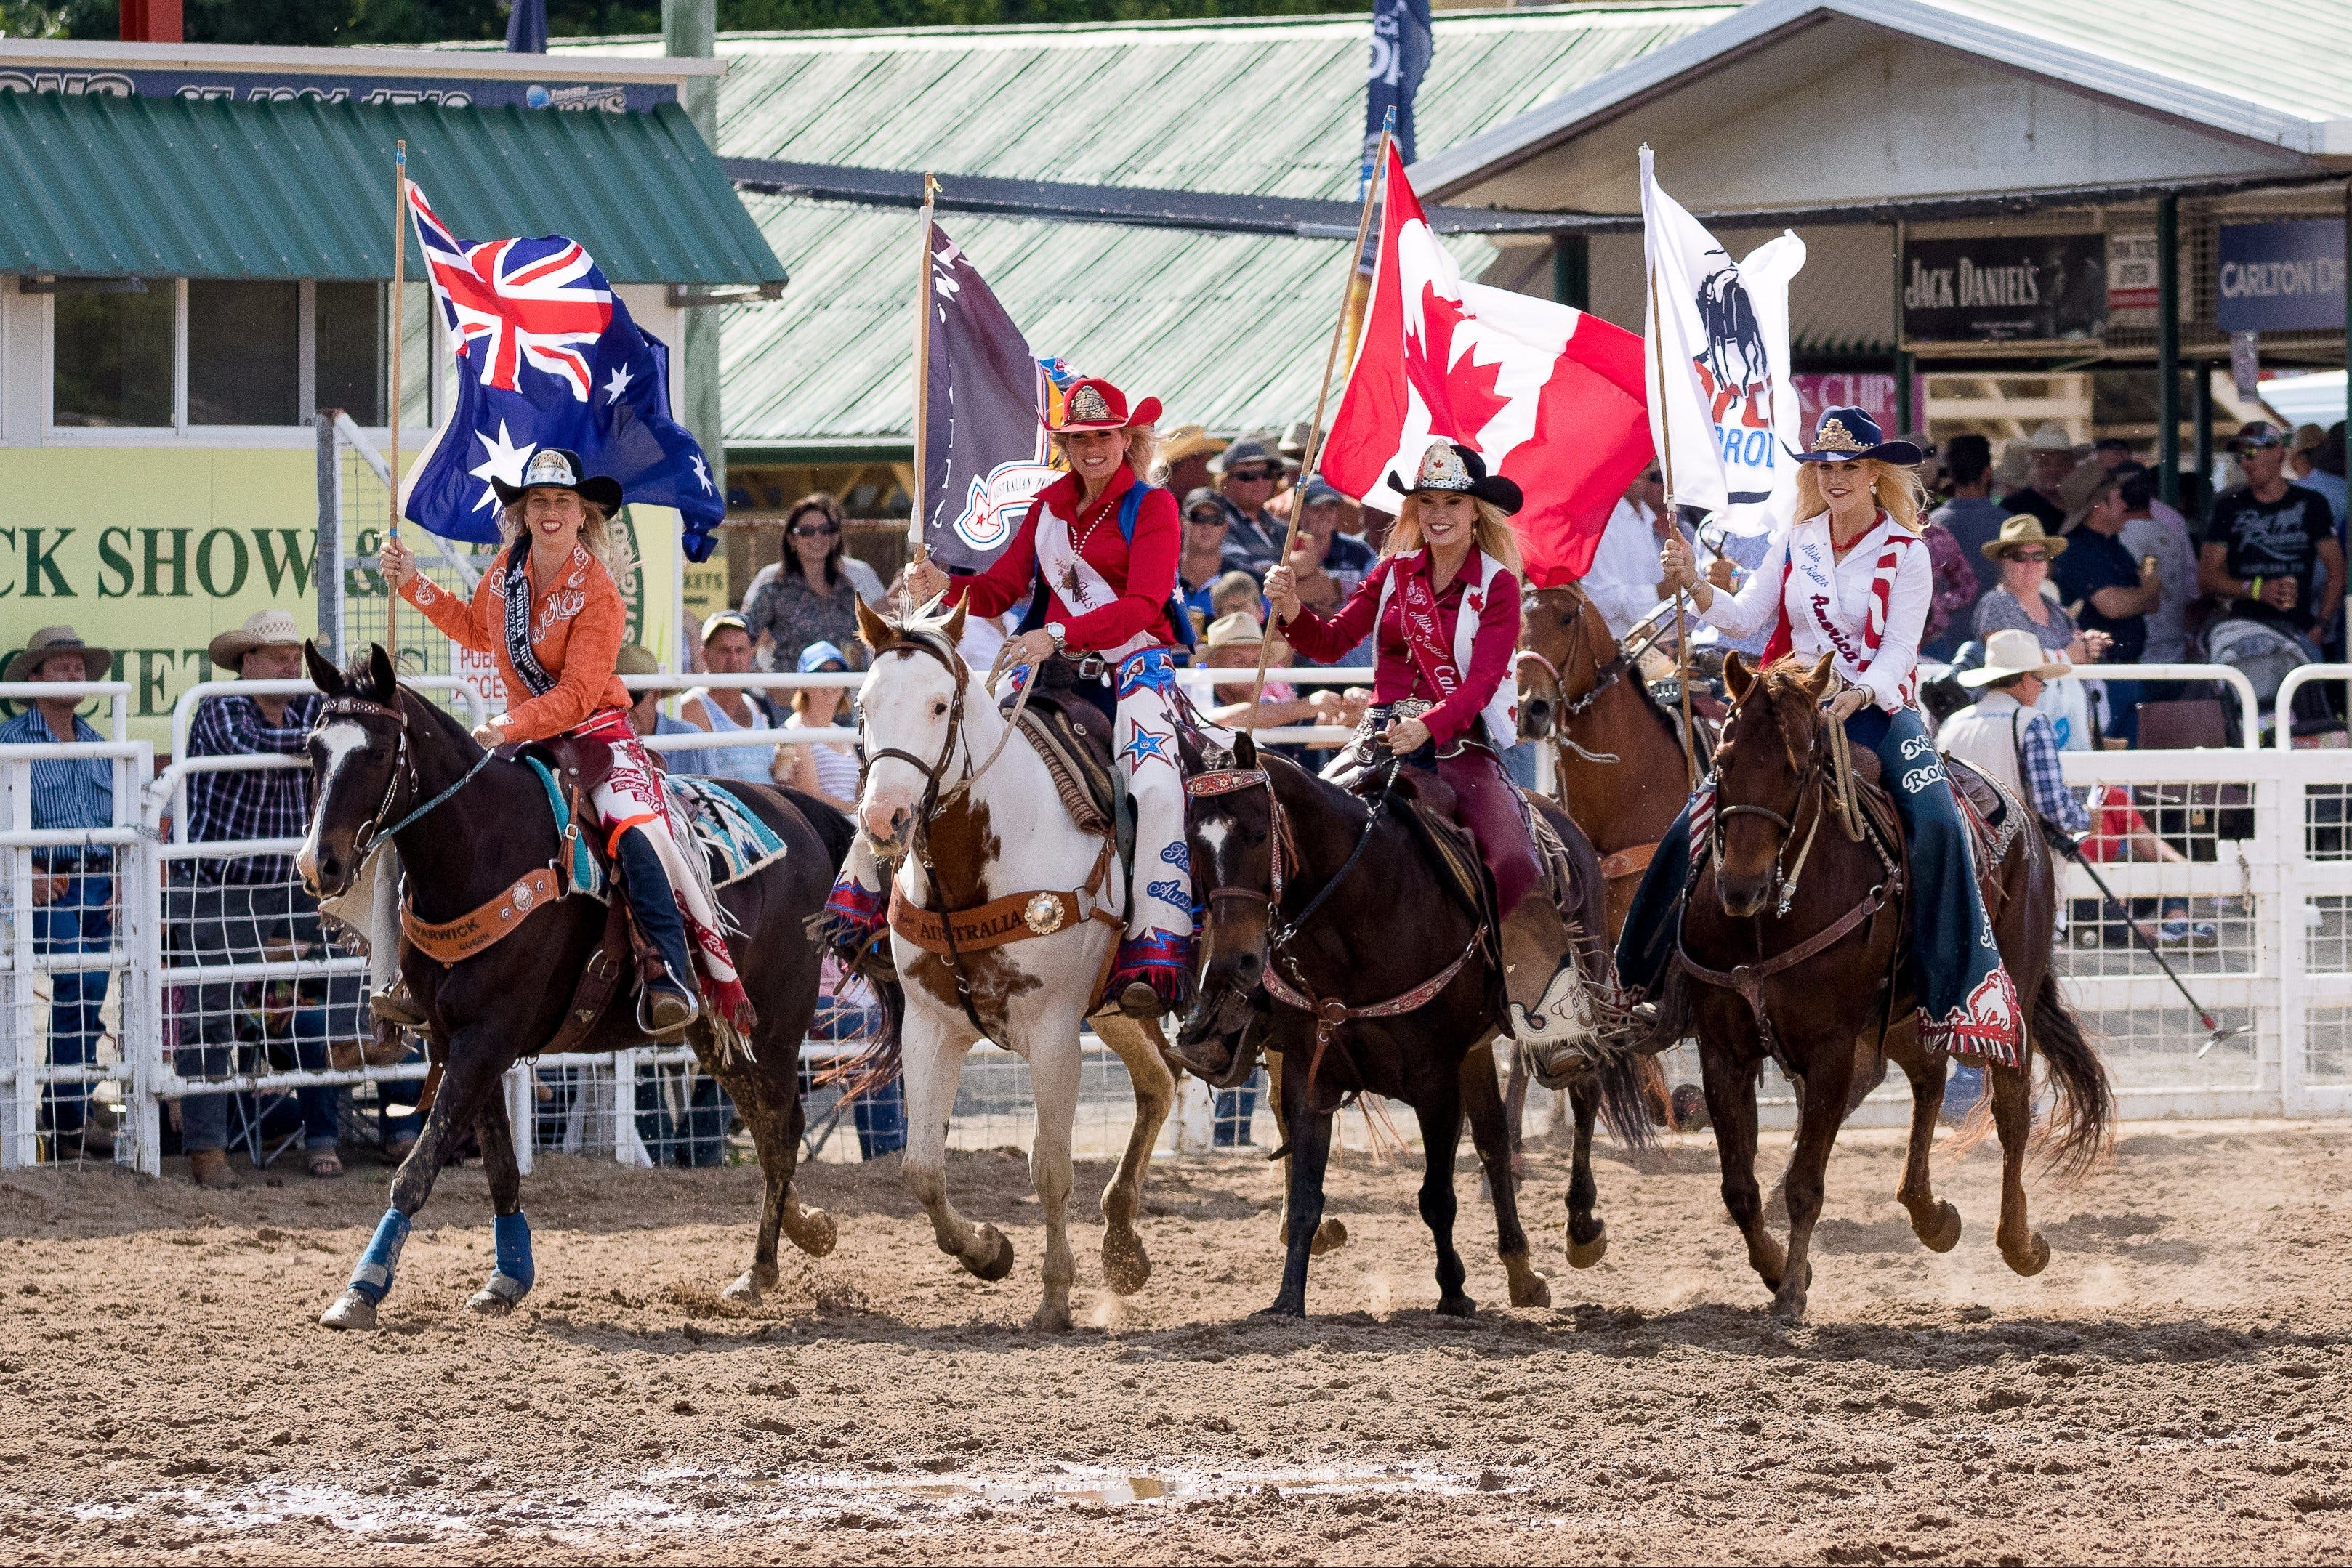 Warwick Rodeo National APRA National Finals and Warwick Gold Cup Campdraft - Hotel Accommodation